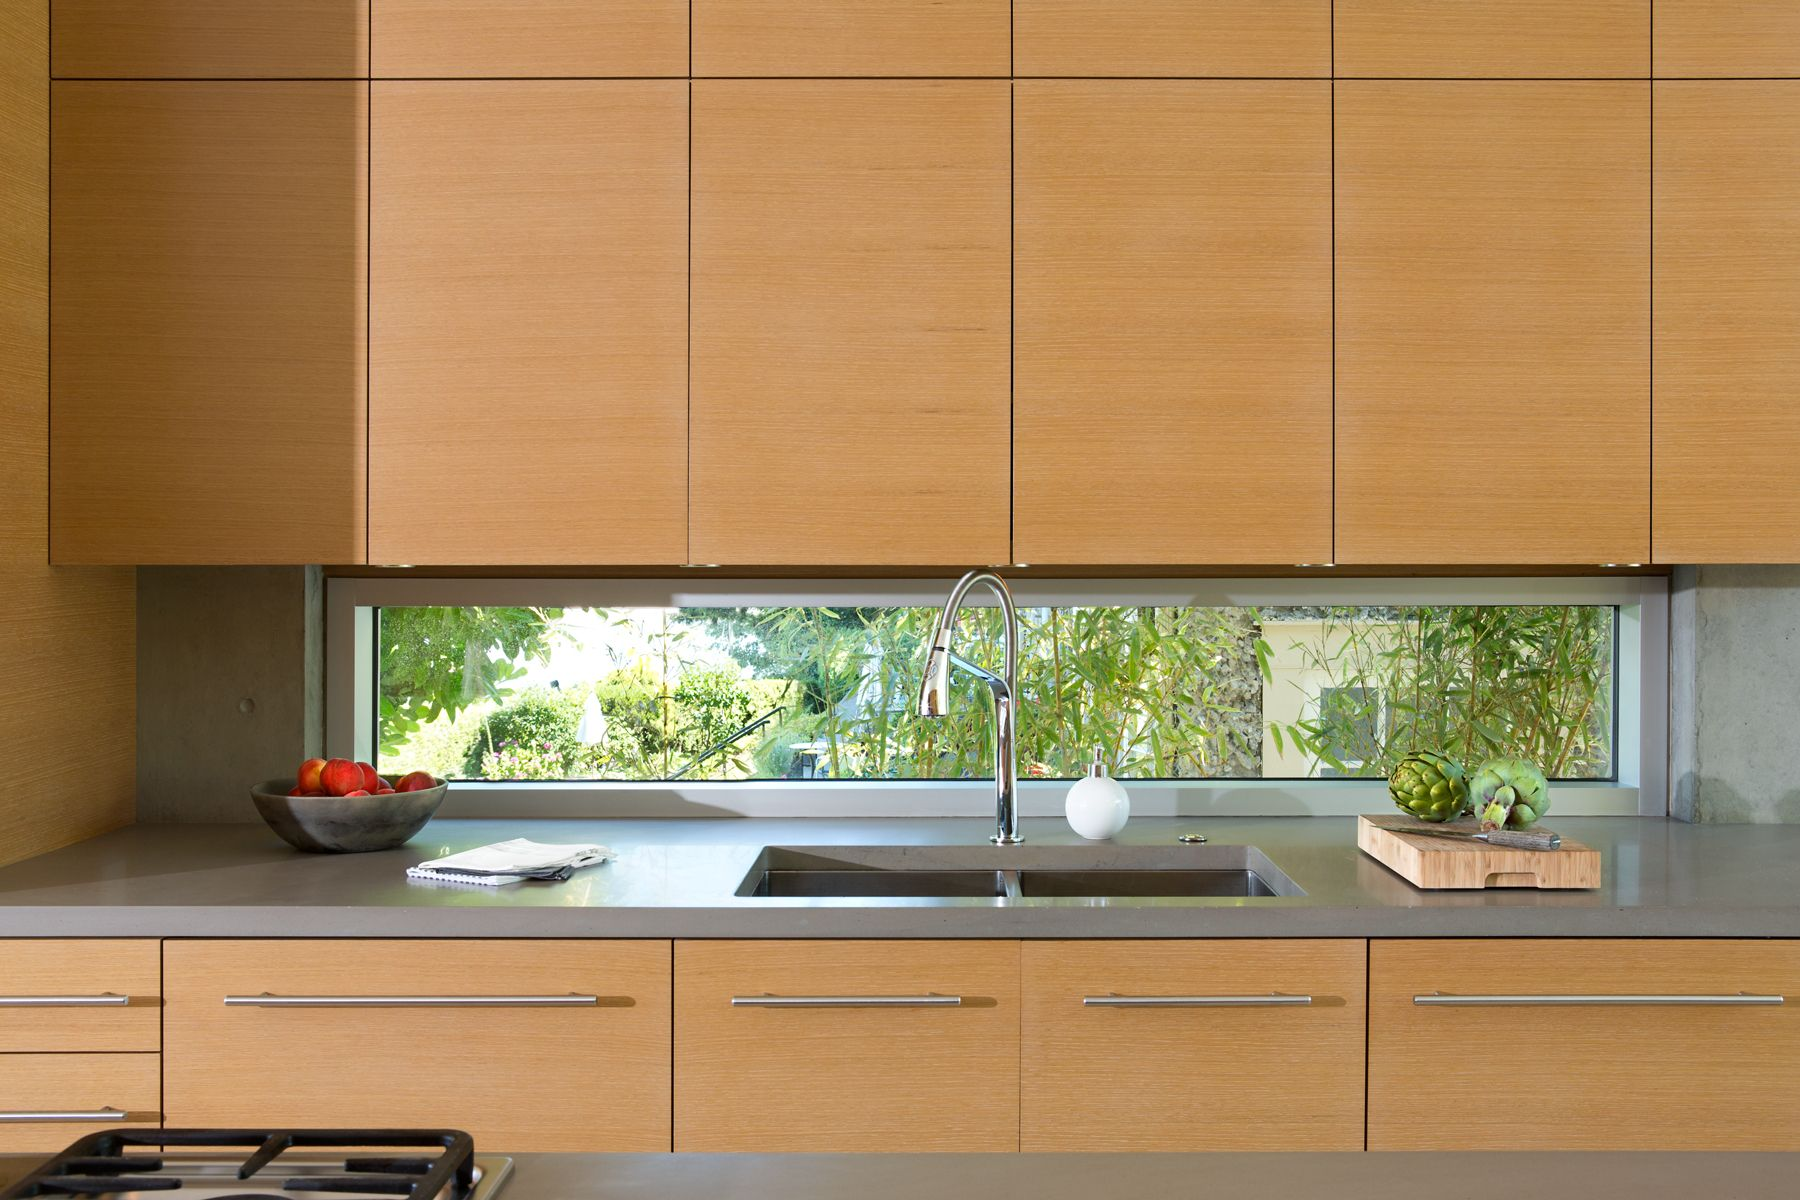 Slot window in kitchen designed to maximize great views while seated ...